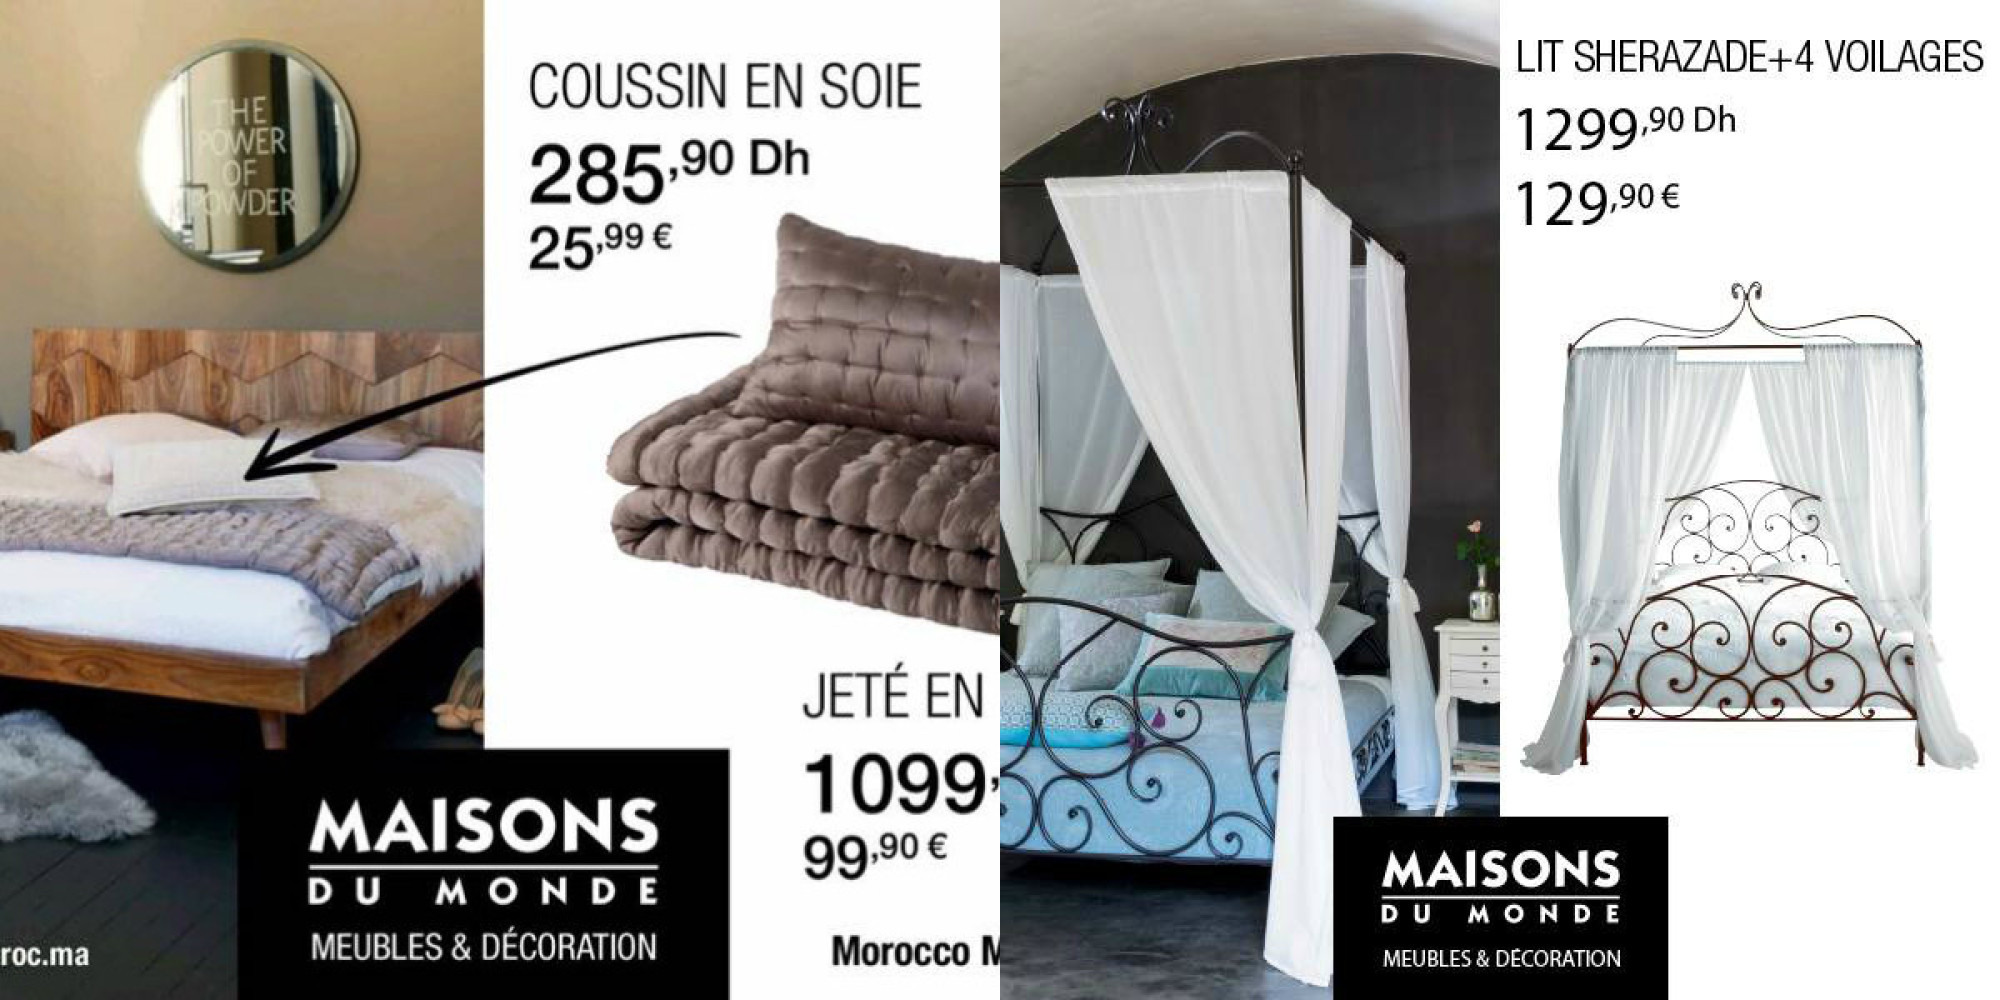 magasin style maison du monde decoration deco maison mer. Black Bedroom Furniture Sets. Home Design Ideas